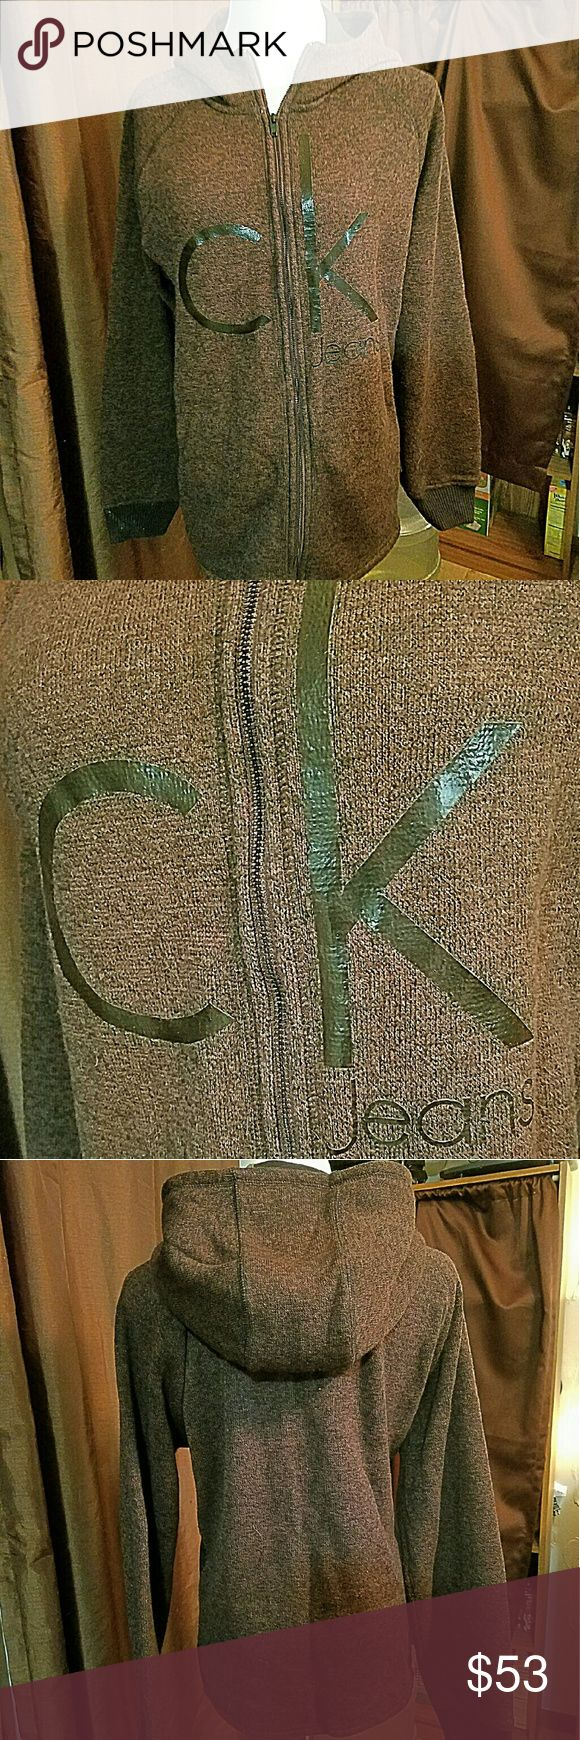 "CALVIN KLEIN ck Jeans Sz Large Textured Hoodie Brand: Calvin Klein Jeans  Item: *Mens ck Jeans Zip Up Hoodie *The Color is Very Hard to Describe - Kind of a Rusty Maroon Brown *Says ck Jeans on Front *Raglan Sleeves *Black Panels on Each Side *Pockets on Each Side for Hands *Very Good to Excellent Pre-Loved Condition  Armpit to Armpit (flat) - 23"" Shoulder to Hem - 27""  *no trades, offers via offer button only* Calvin Klein Jeans Shirts Sweatshirts & Hoodies"